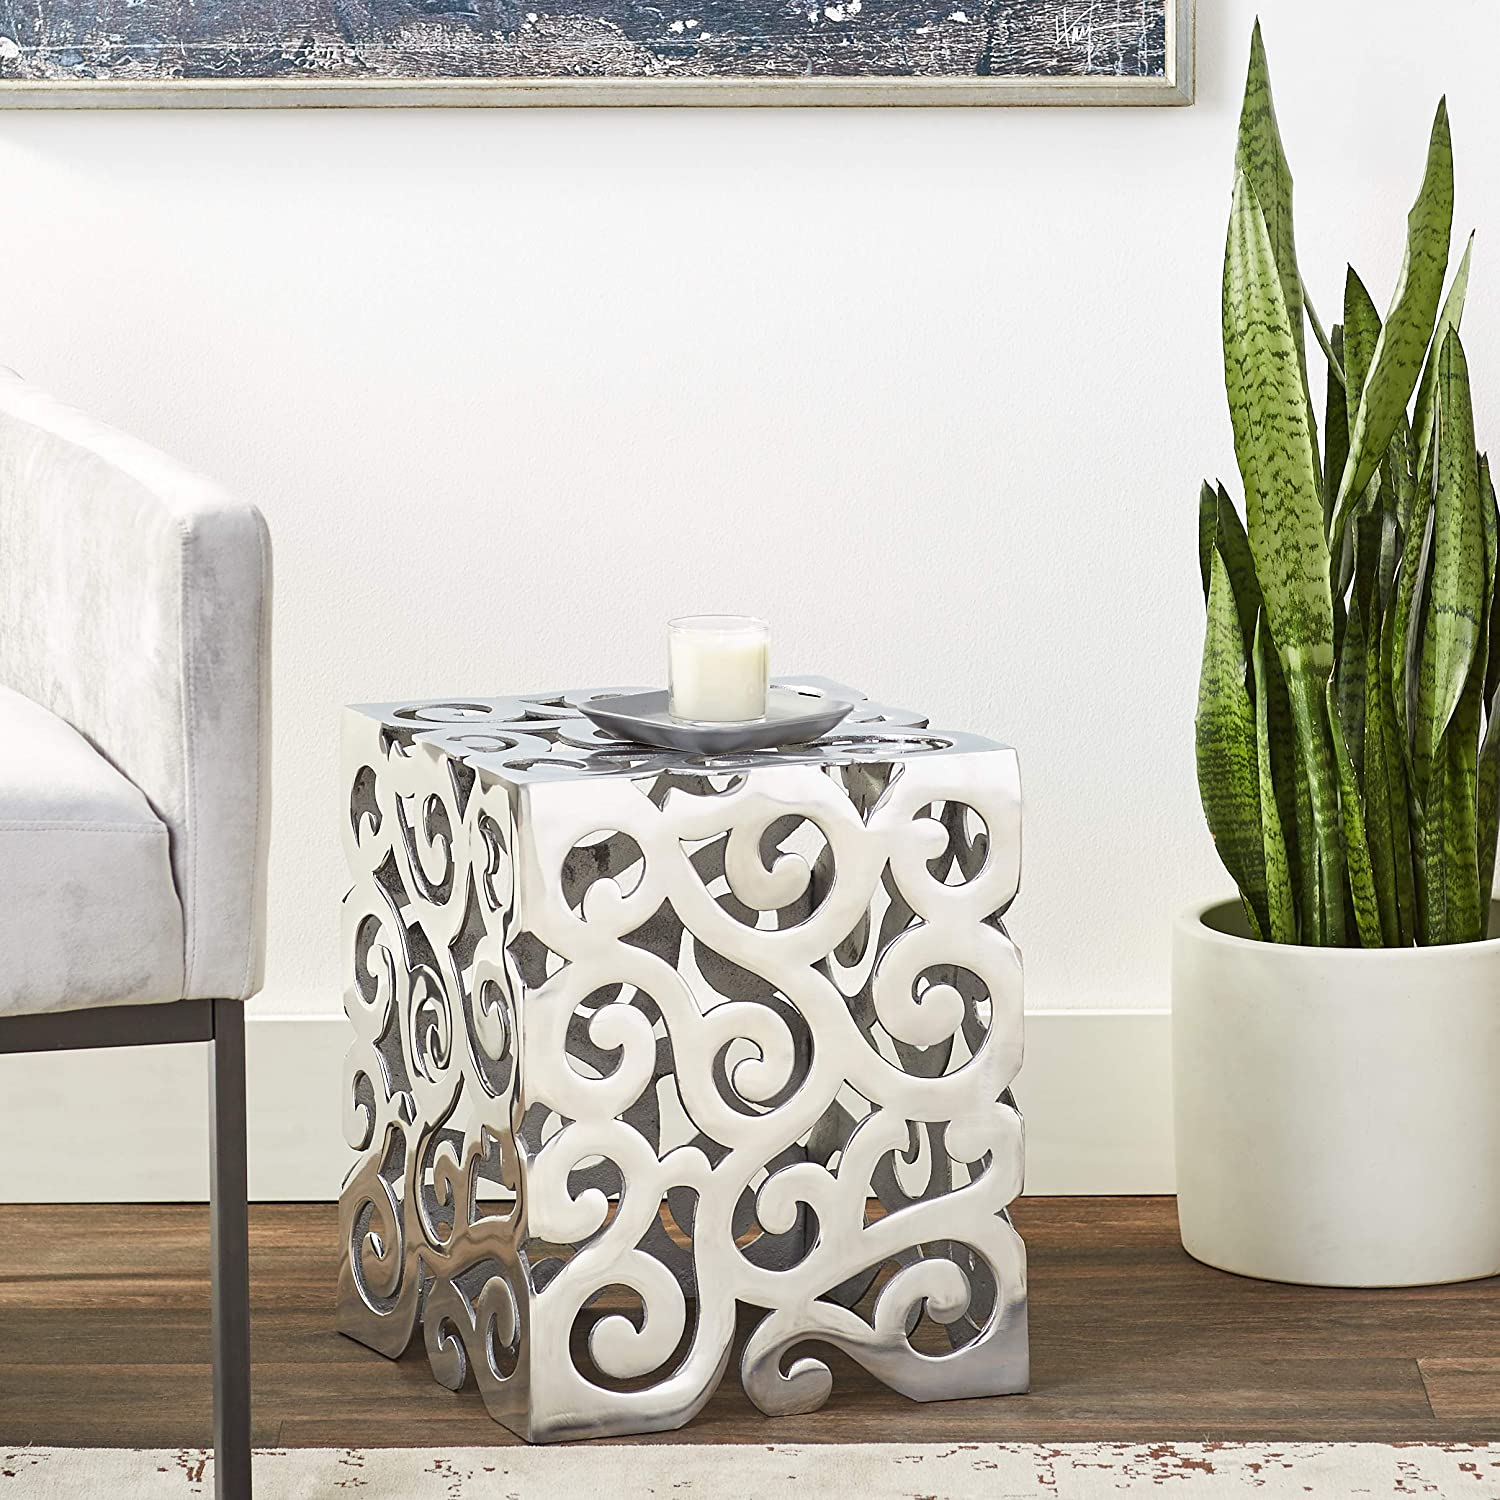 Office Lobby Art Home Aluminum Square 12 x 12 x 17 Silver Modern Day Accents Paisley Stool Chair Modern Statement Living Room